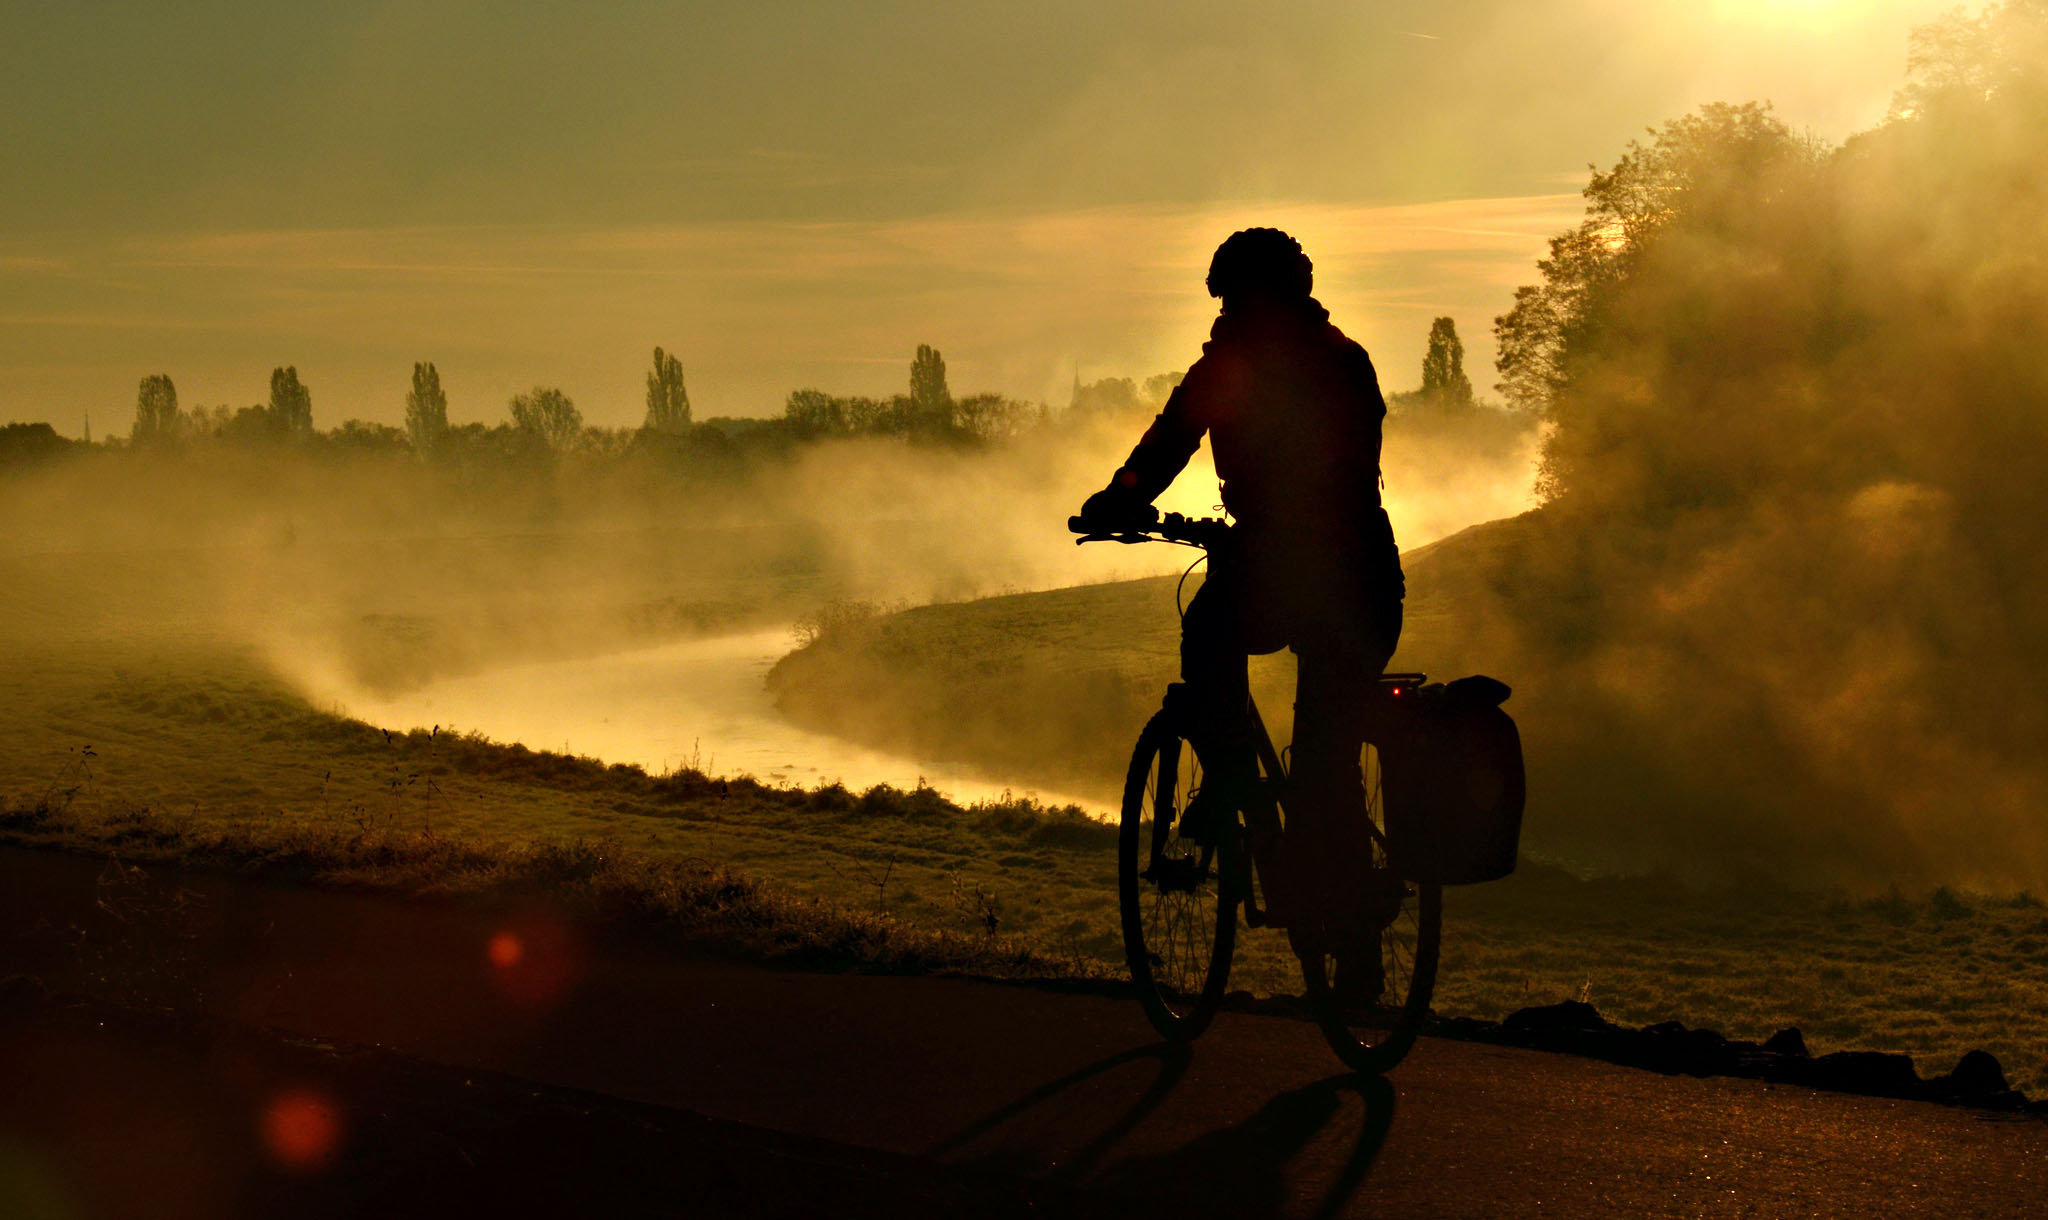 A cyclist drives past wafts of mist rising from a tributary of the Weisse Elster river in Leipzig, eastern Germany, on Tuesday